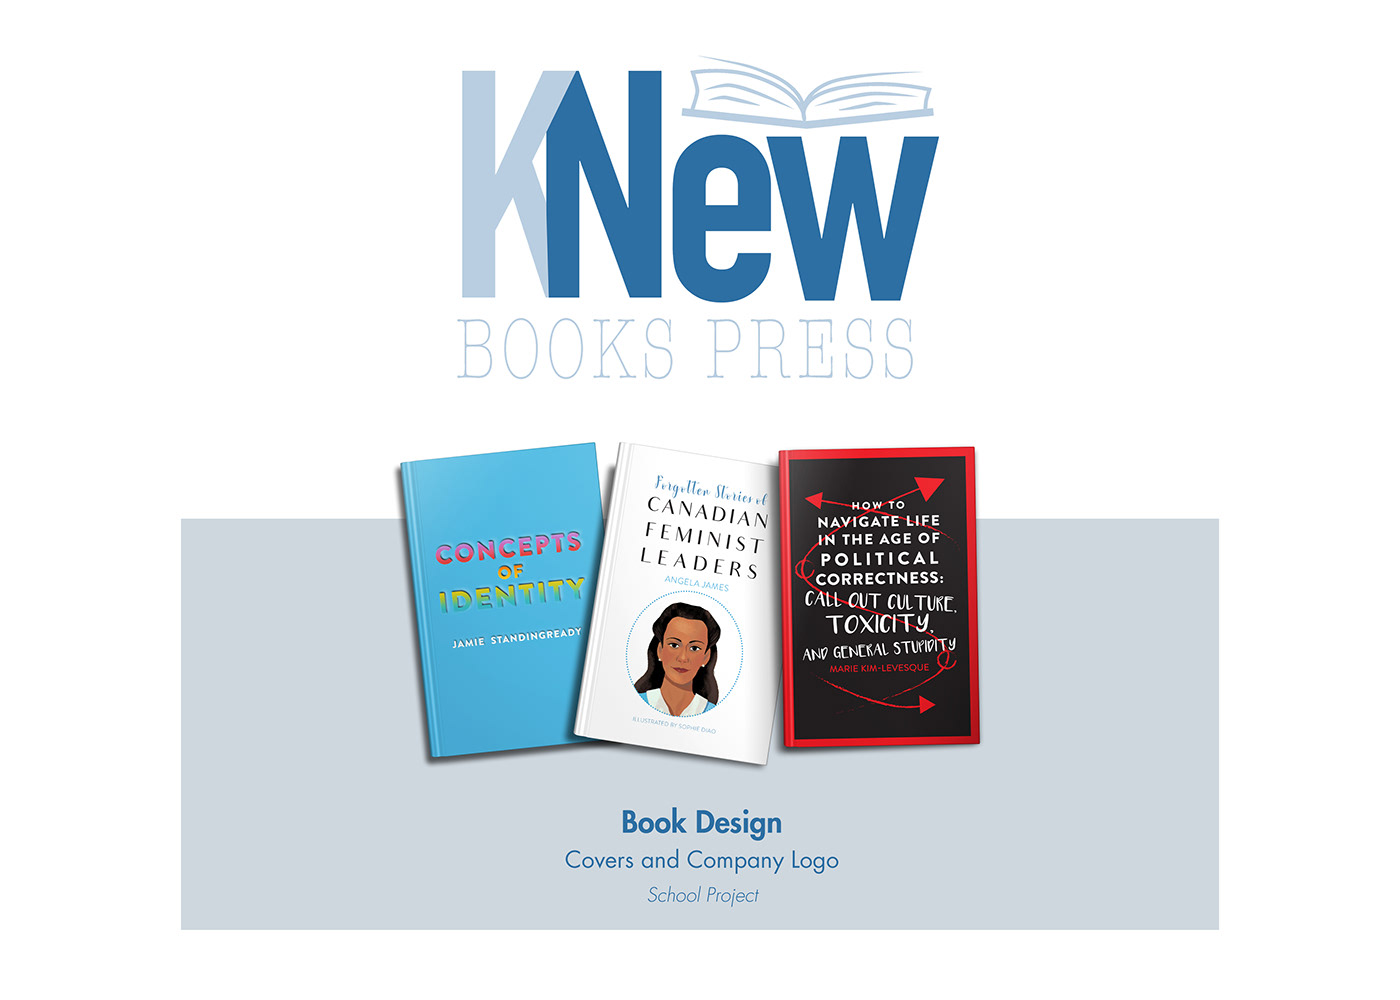 KNew Books Press Book Design  Covers and Company Logo School Project